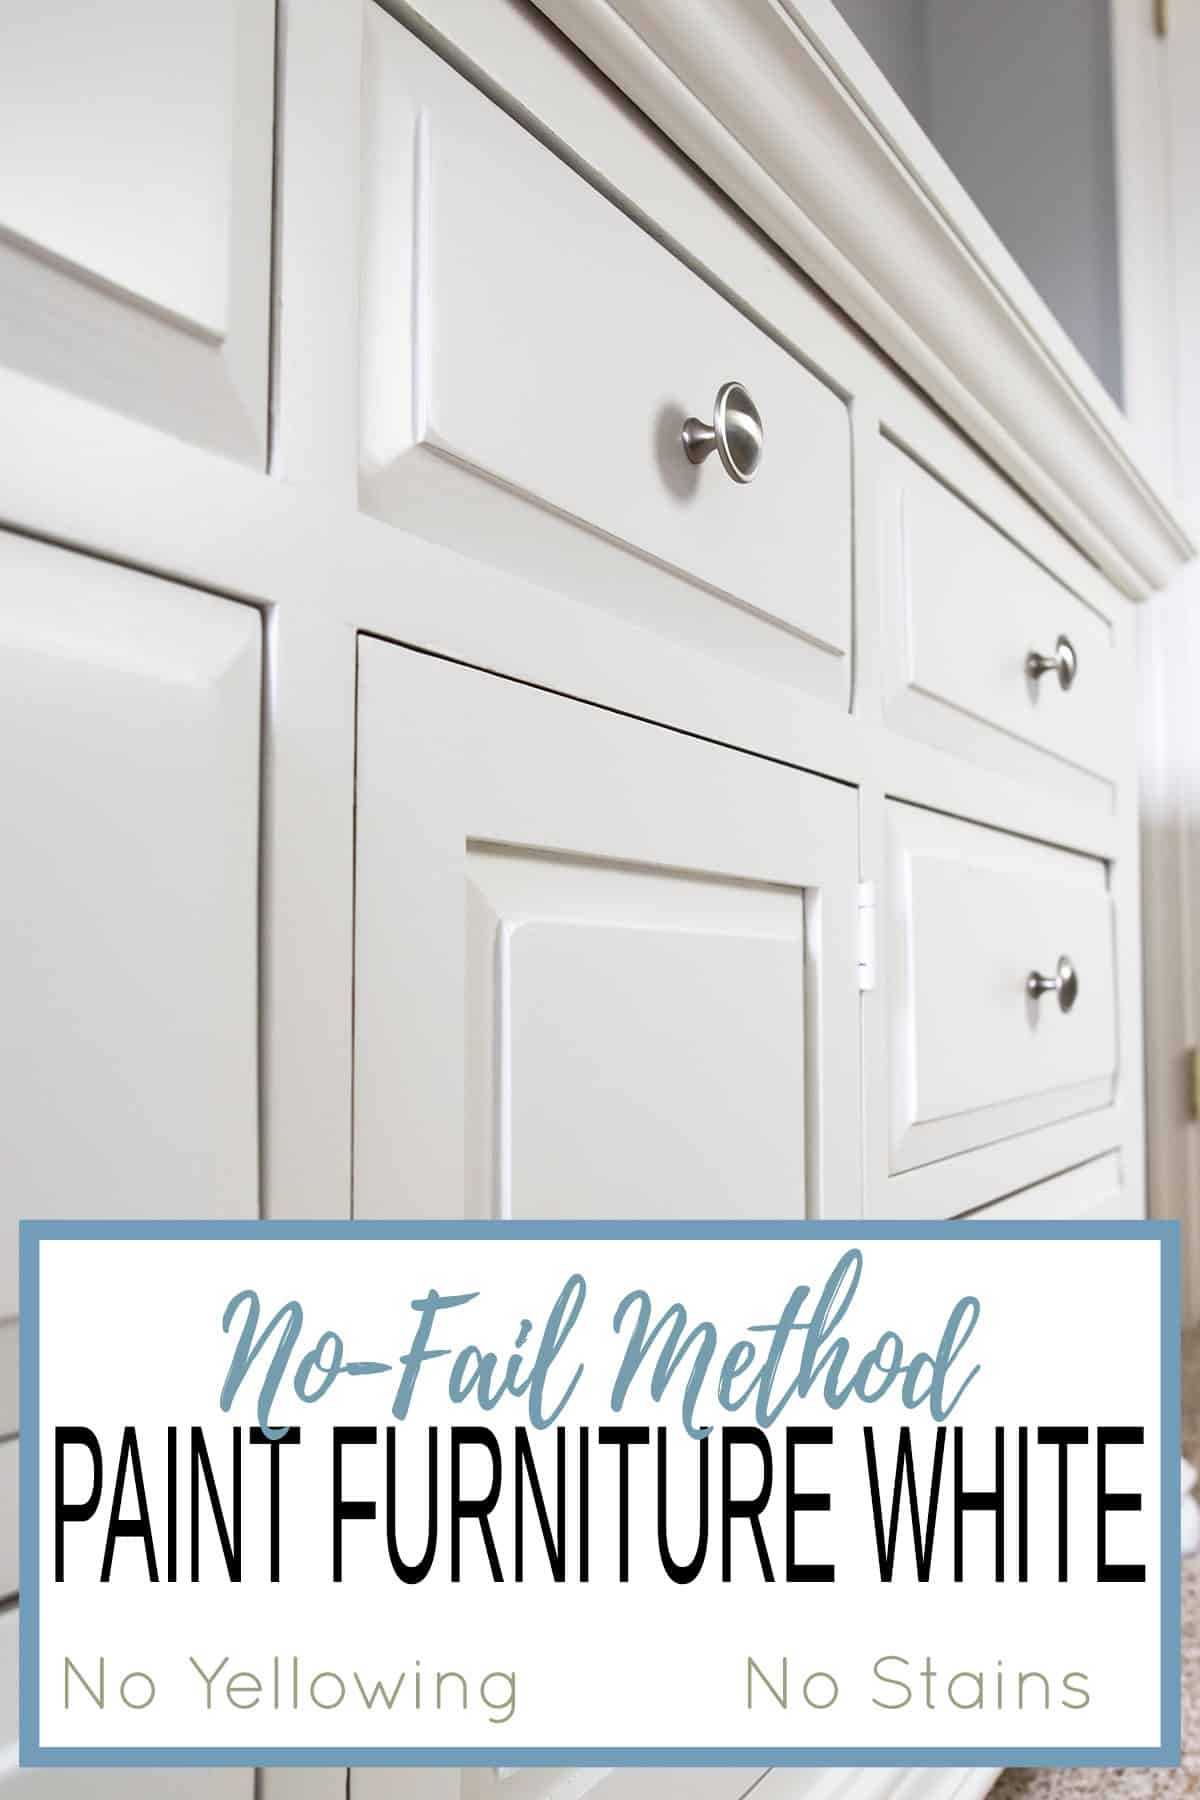 White painted dresser with title overlay how to paint furniture white.